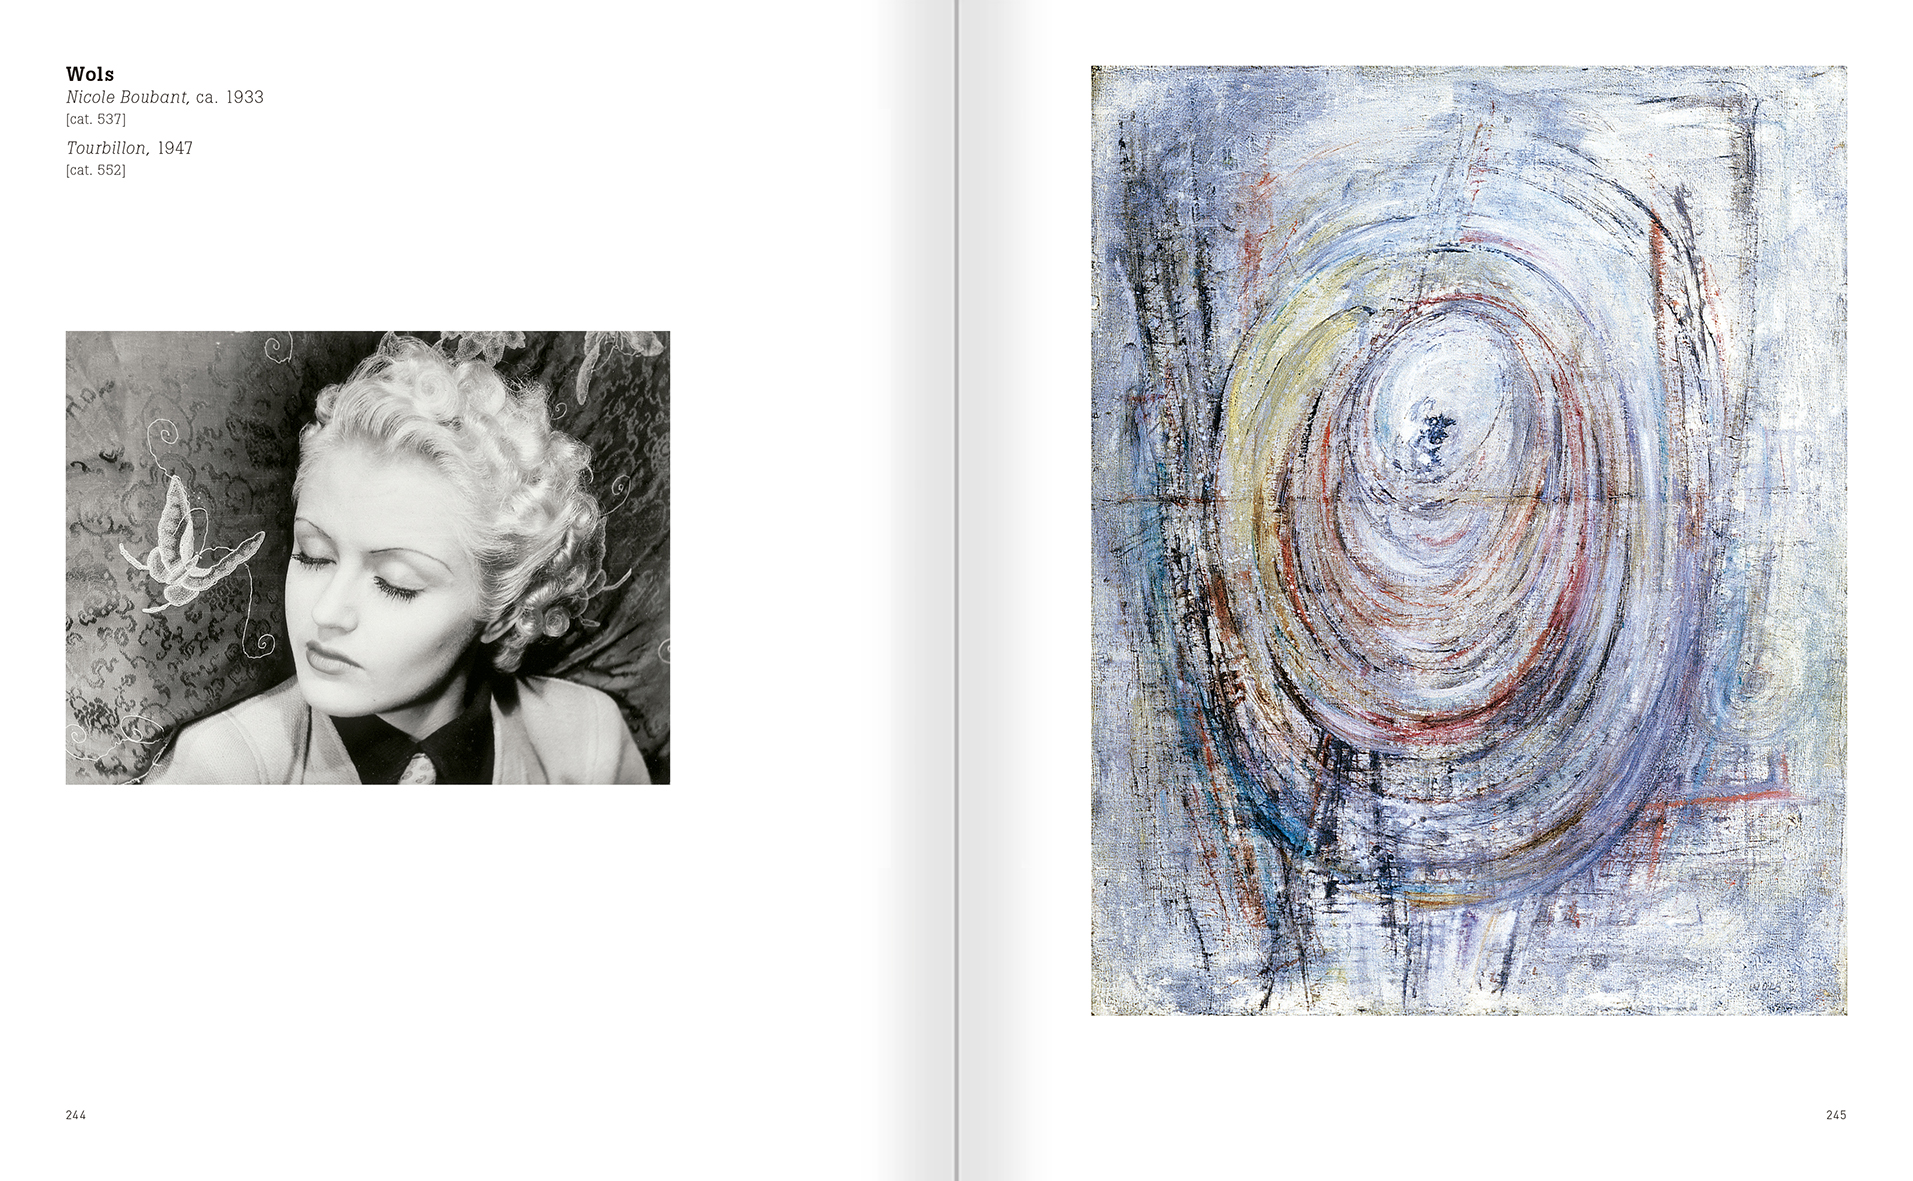 Selection from the catalogue 'Nancy Spero. Dissidances', pages 244 and 245